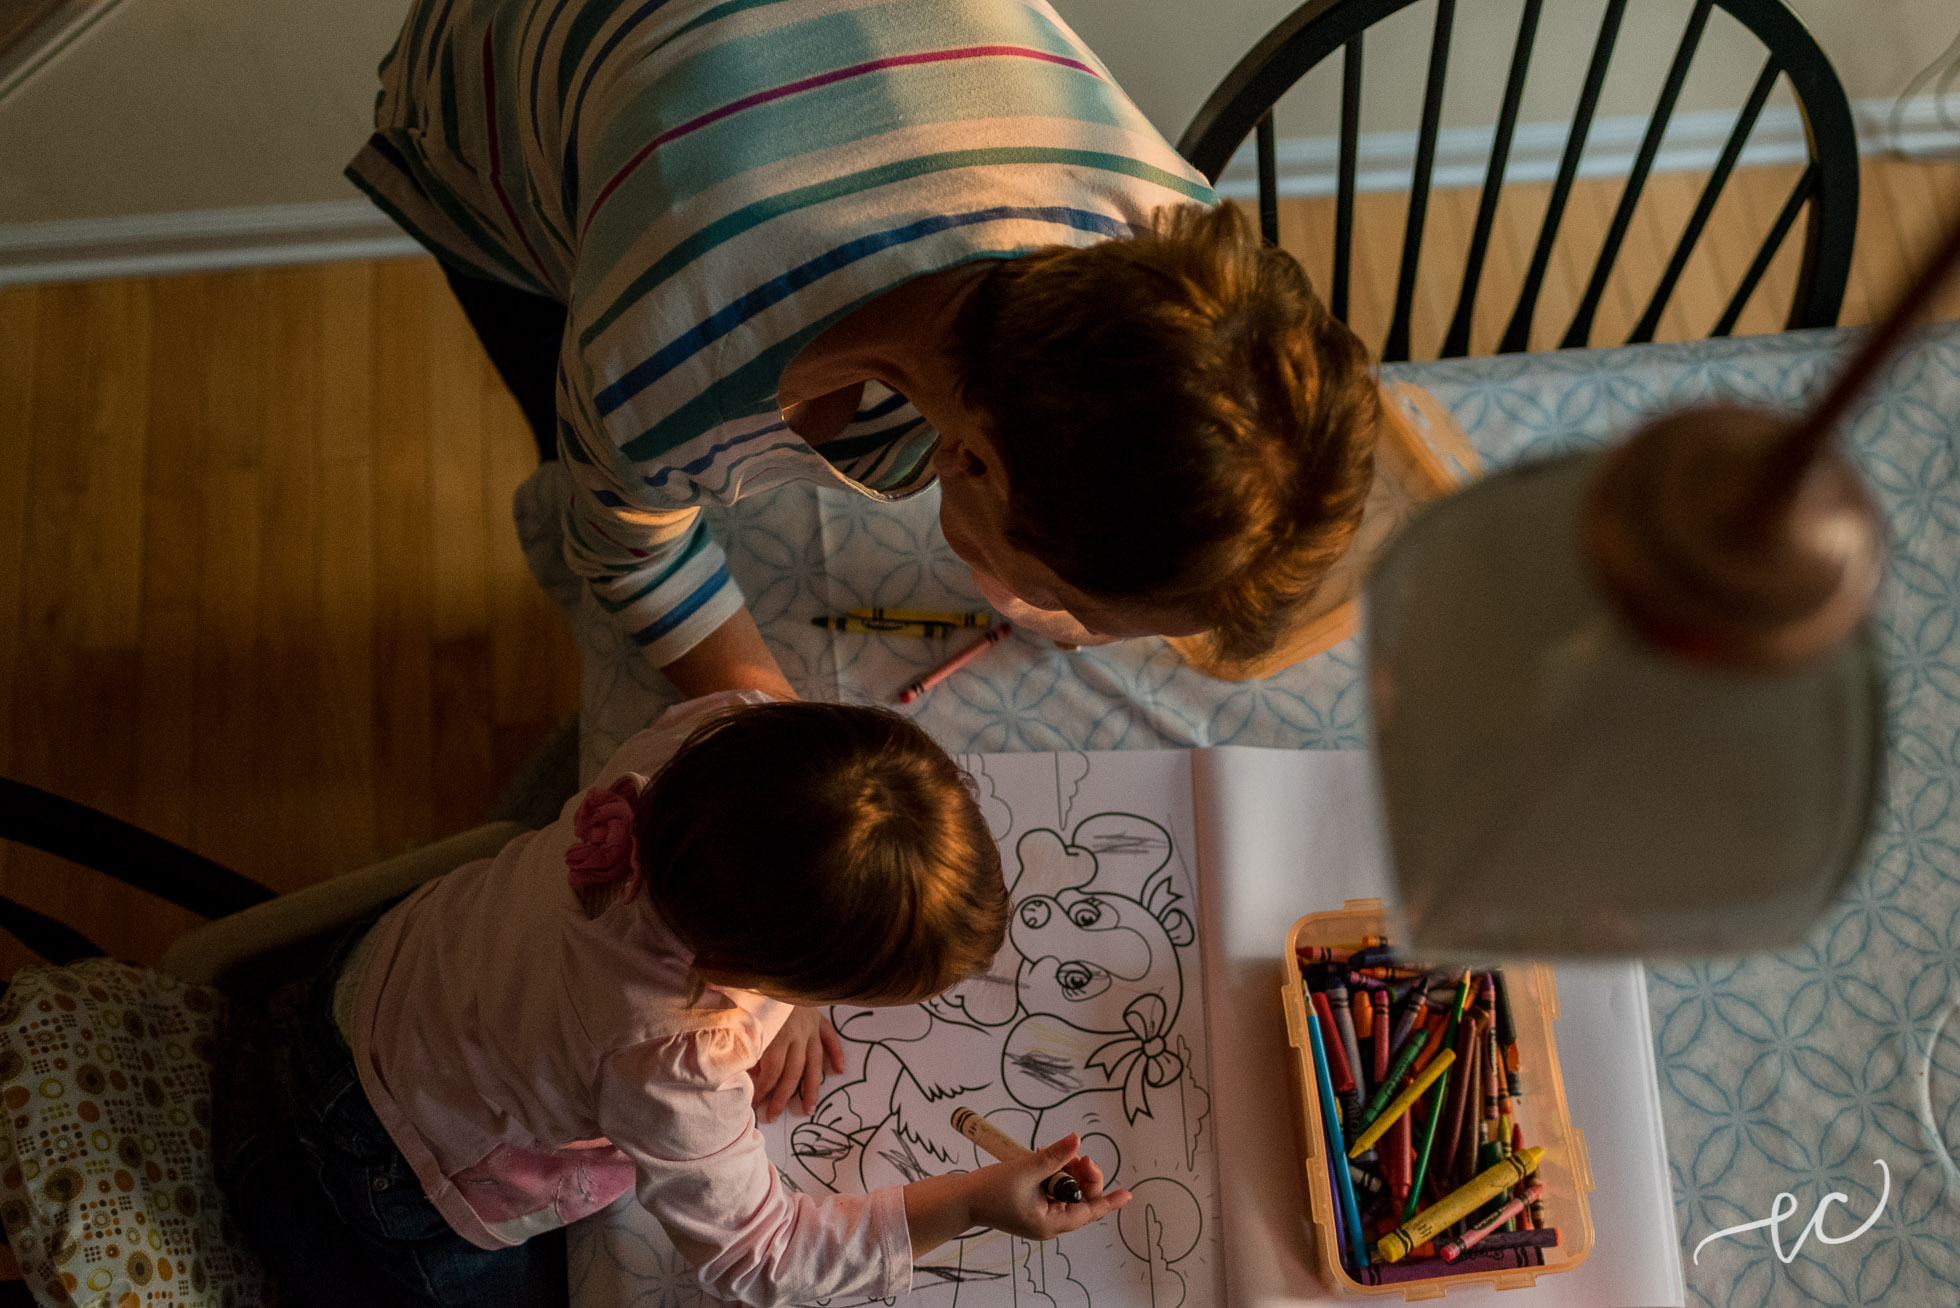 coloring with grandmom. #goldenhour